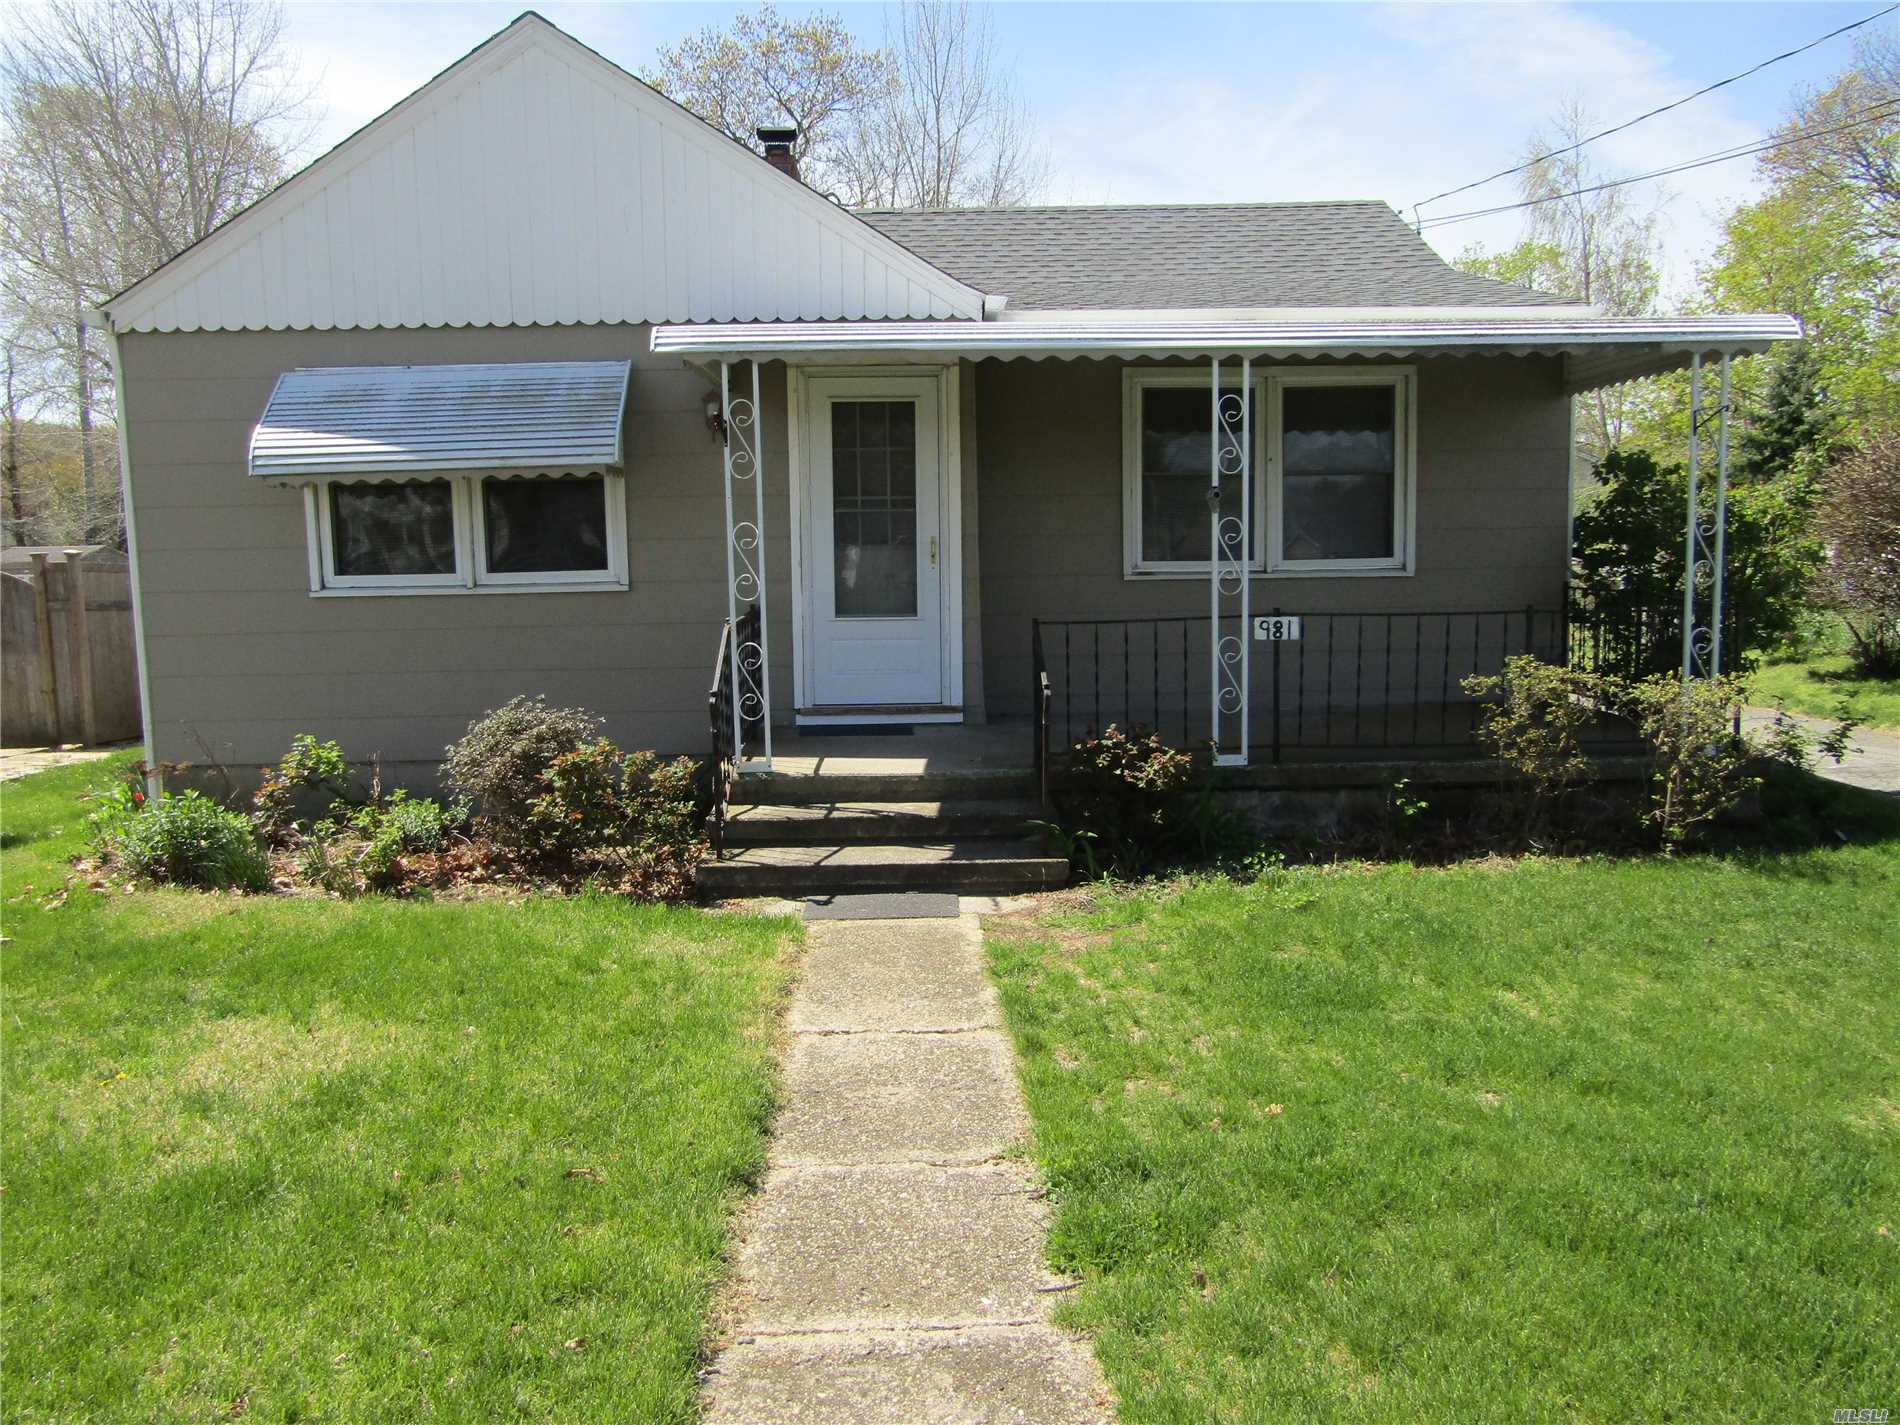 The perfect rental. Newer kitchen, bath, doors, freshly painted, new carpeting. No smoking, no pets, credit check. A must see!